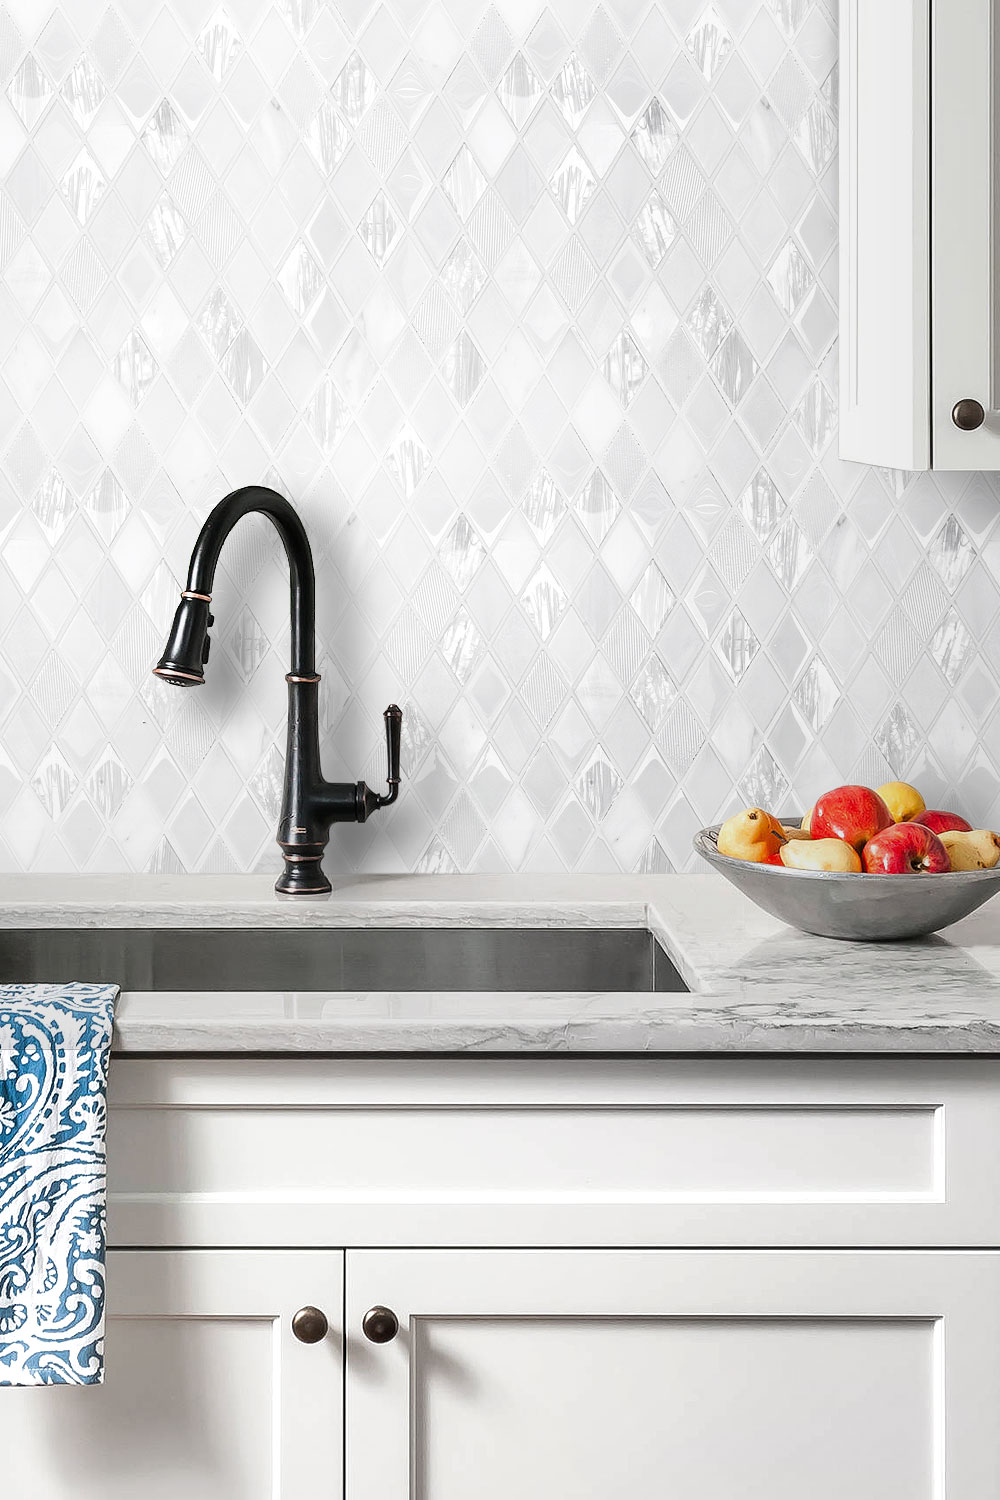 Elegant White Rhomboid Backsplash Tile Backsplash Com